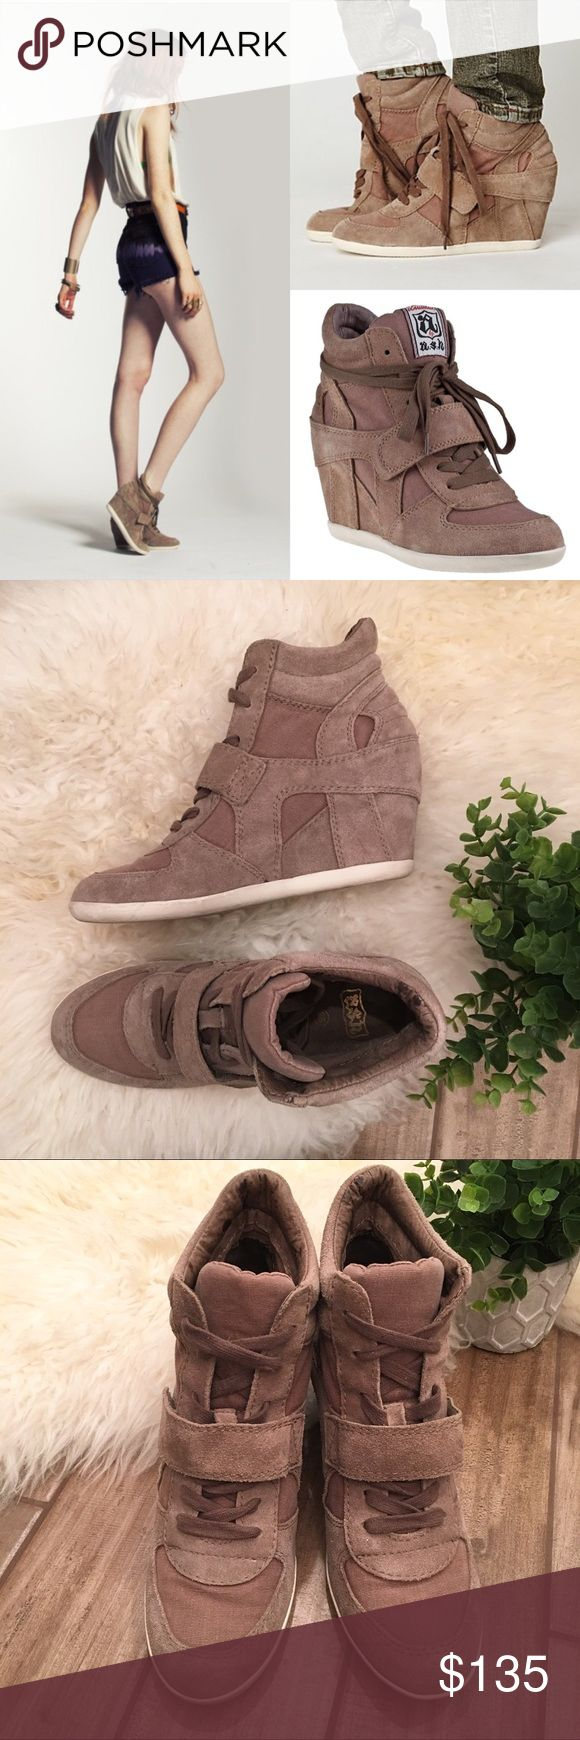 Ash Bowie wedge sneakers taupe brown suede 38 8 These adorable Bowie sneakers with a hidden wedge are taupe suede with canvas accents. Lace up with velcro closure and rubber sole. Size 38 from ASH with hardly and wear! These were $210. Ash Shoes Sneakers